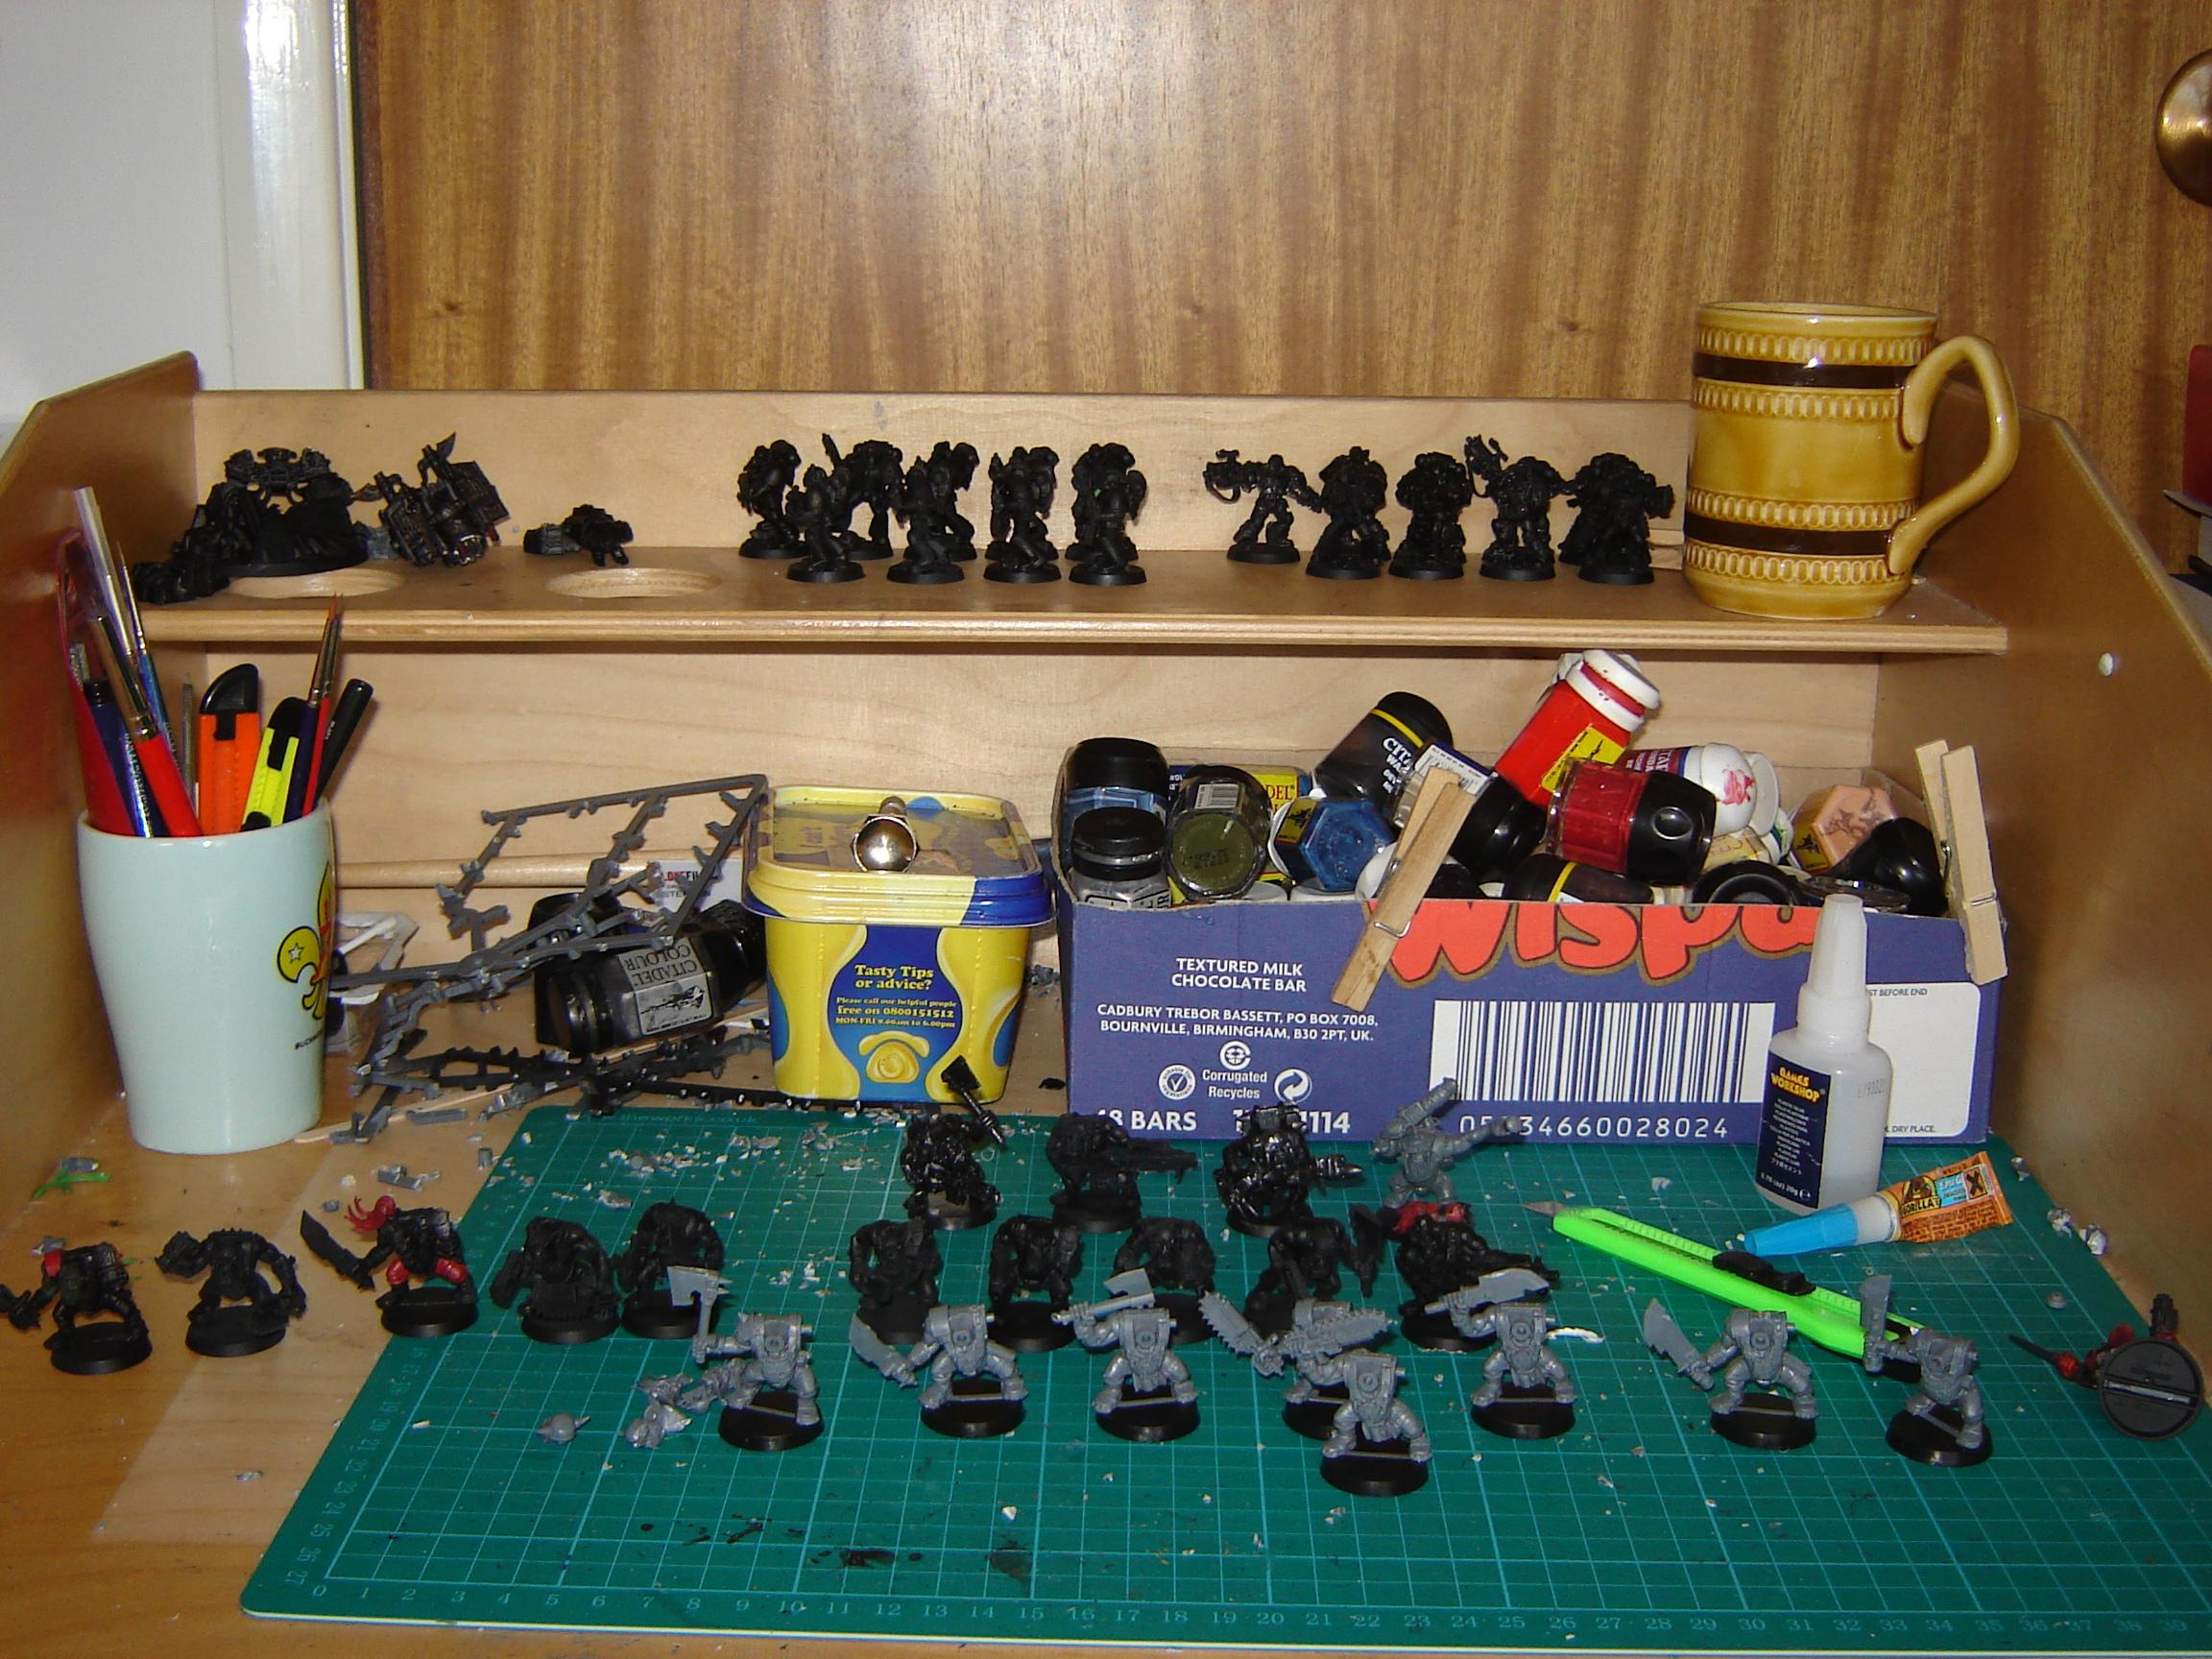 Desk Cleared of all but unpainted models